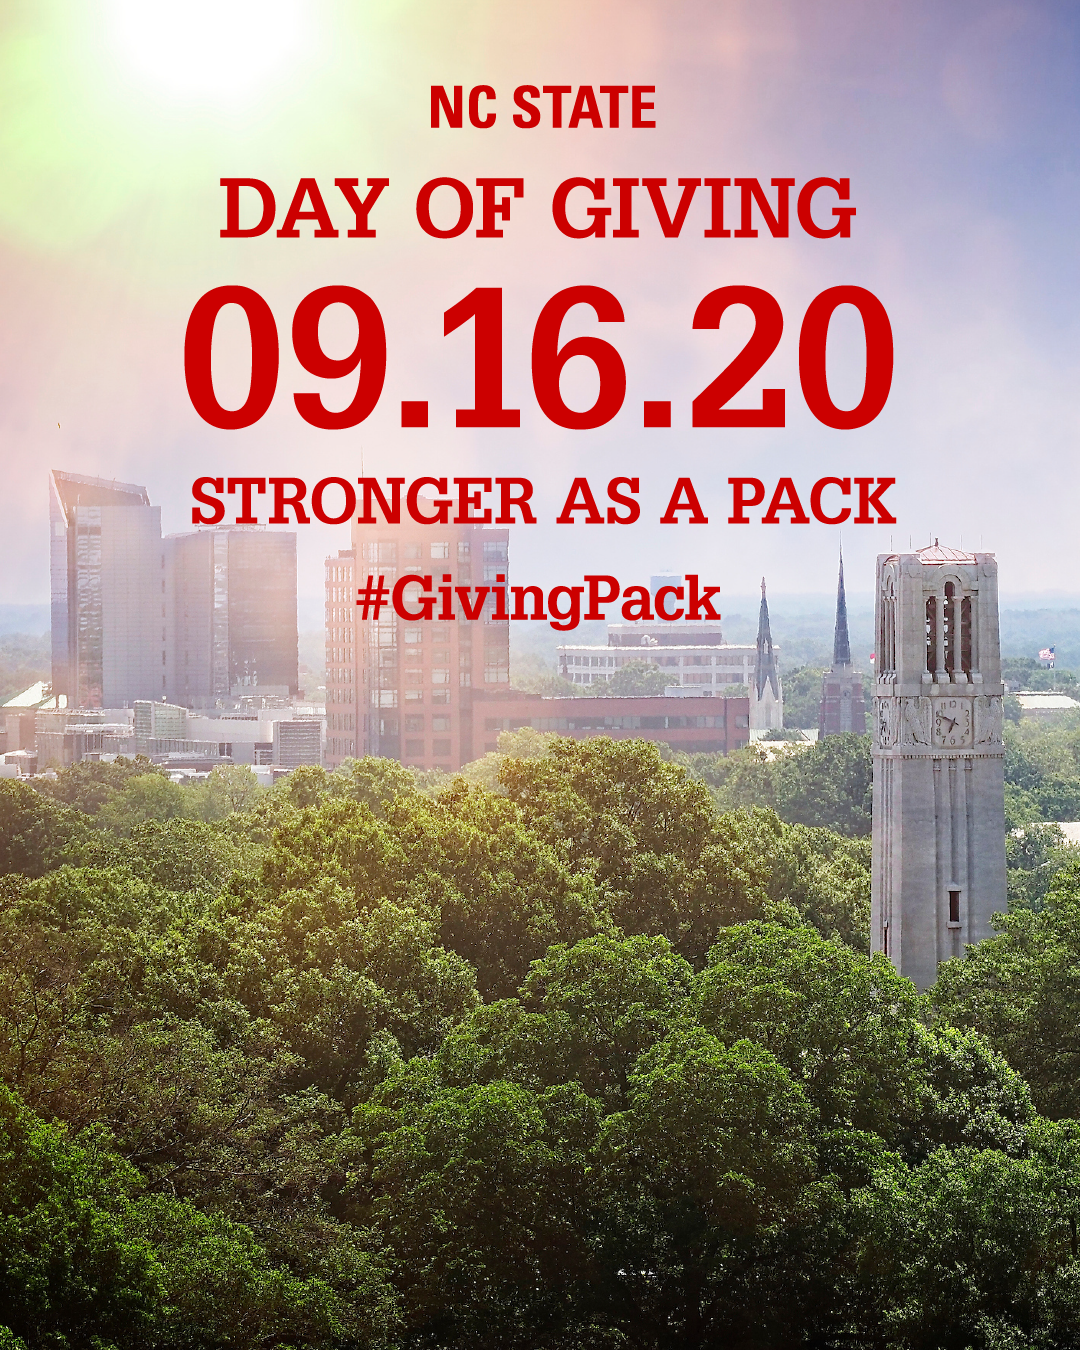 Instagram image of the belltower and text reading NC State Day of Giving 09.16.20 Stronger as a Pack Hashtag Giving Pack